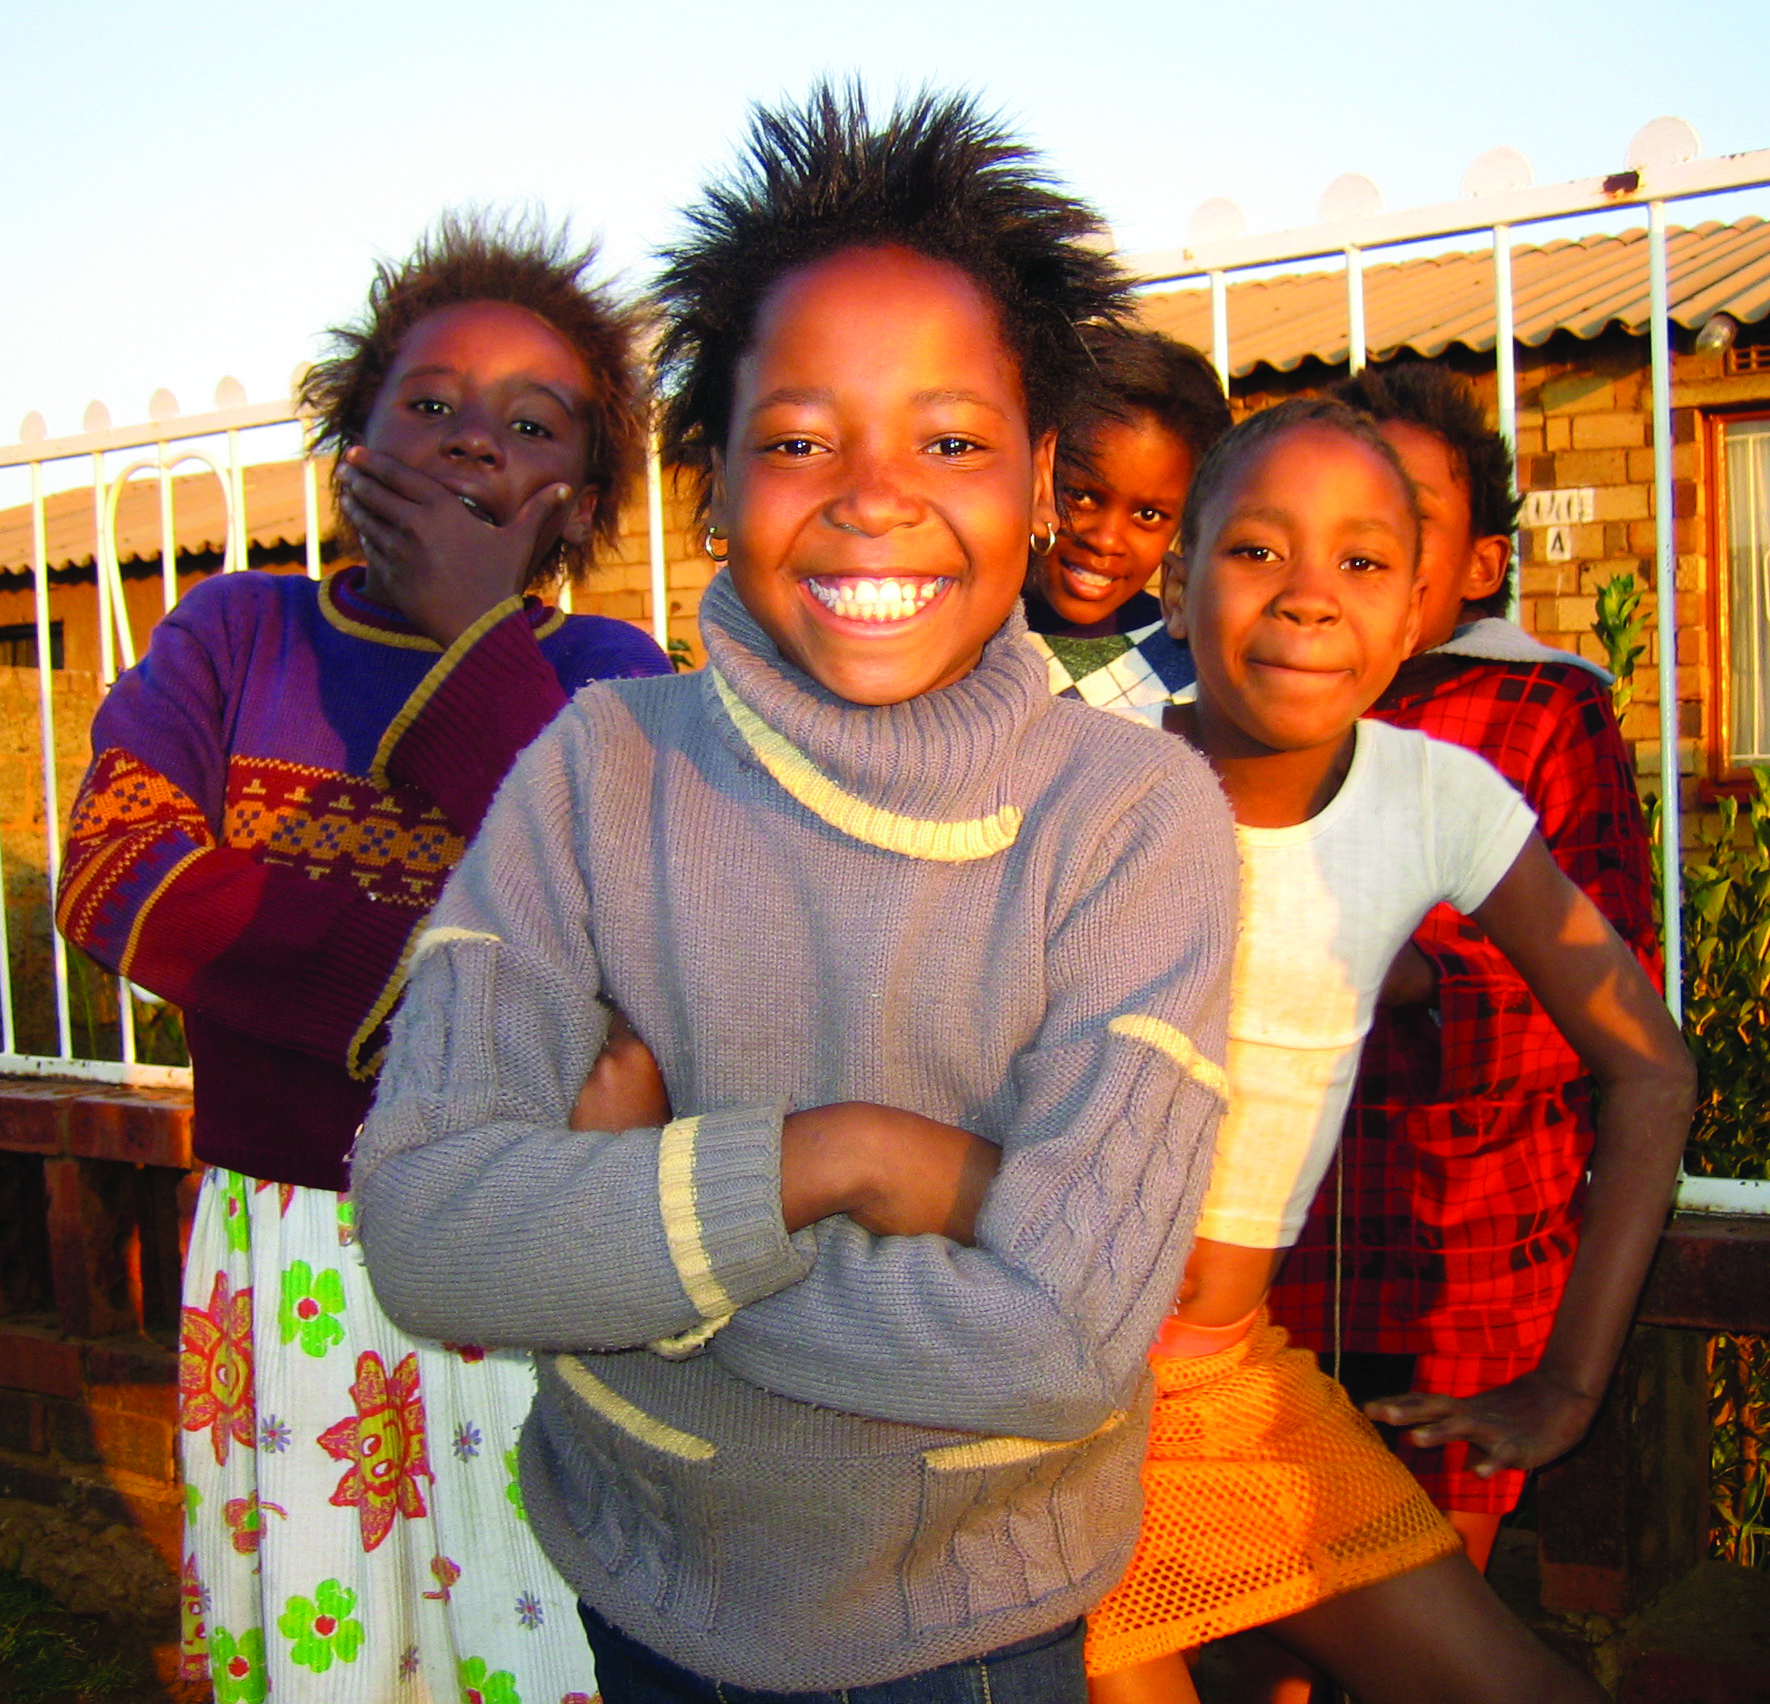 Friendly faces in Soweto Photo Credit: South Africa Tourism